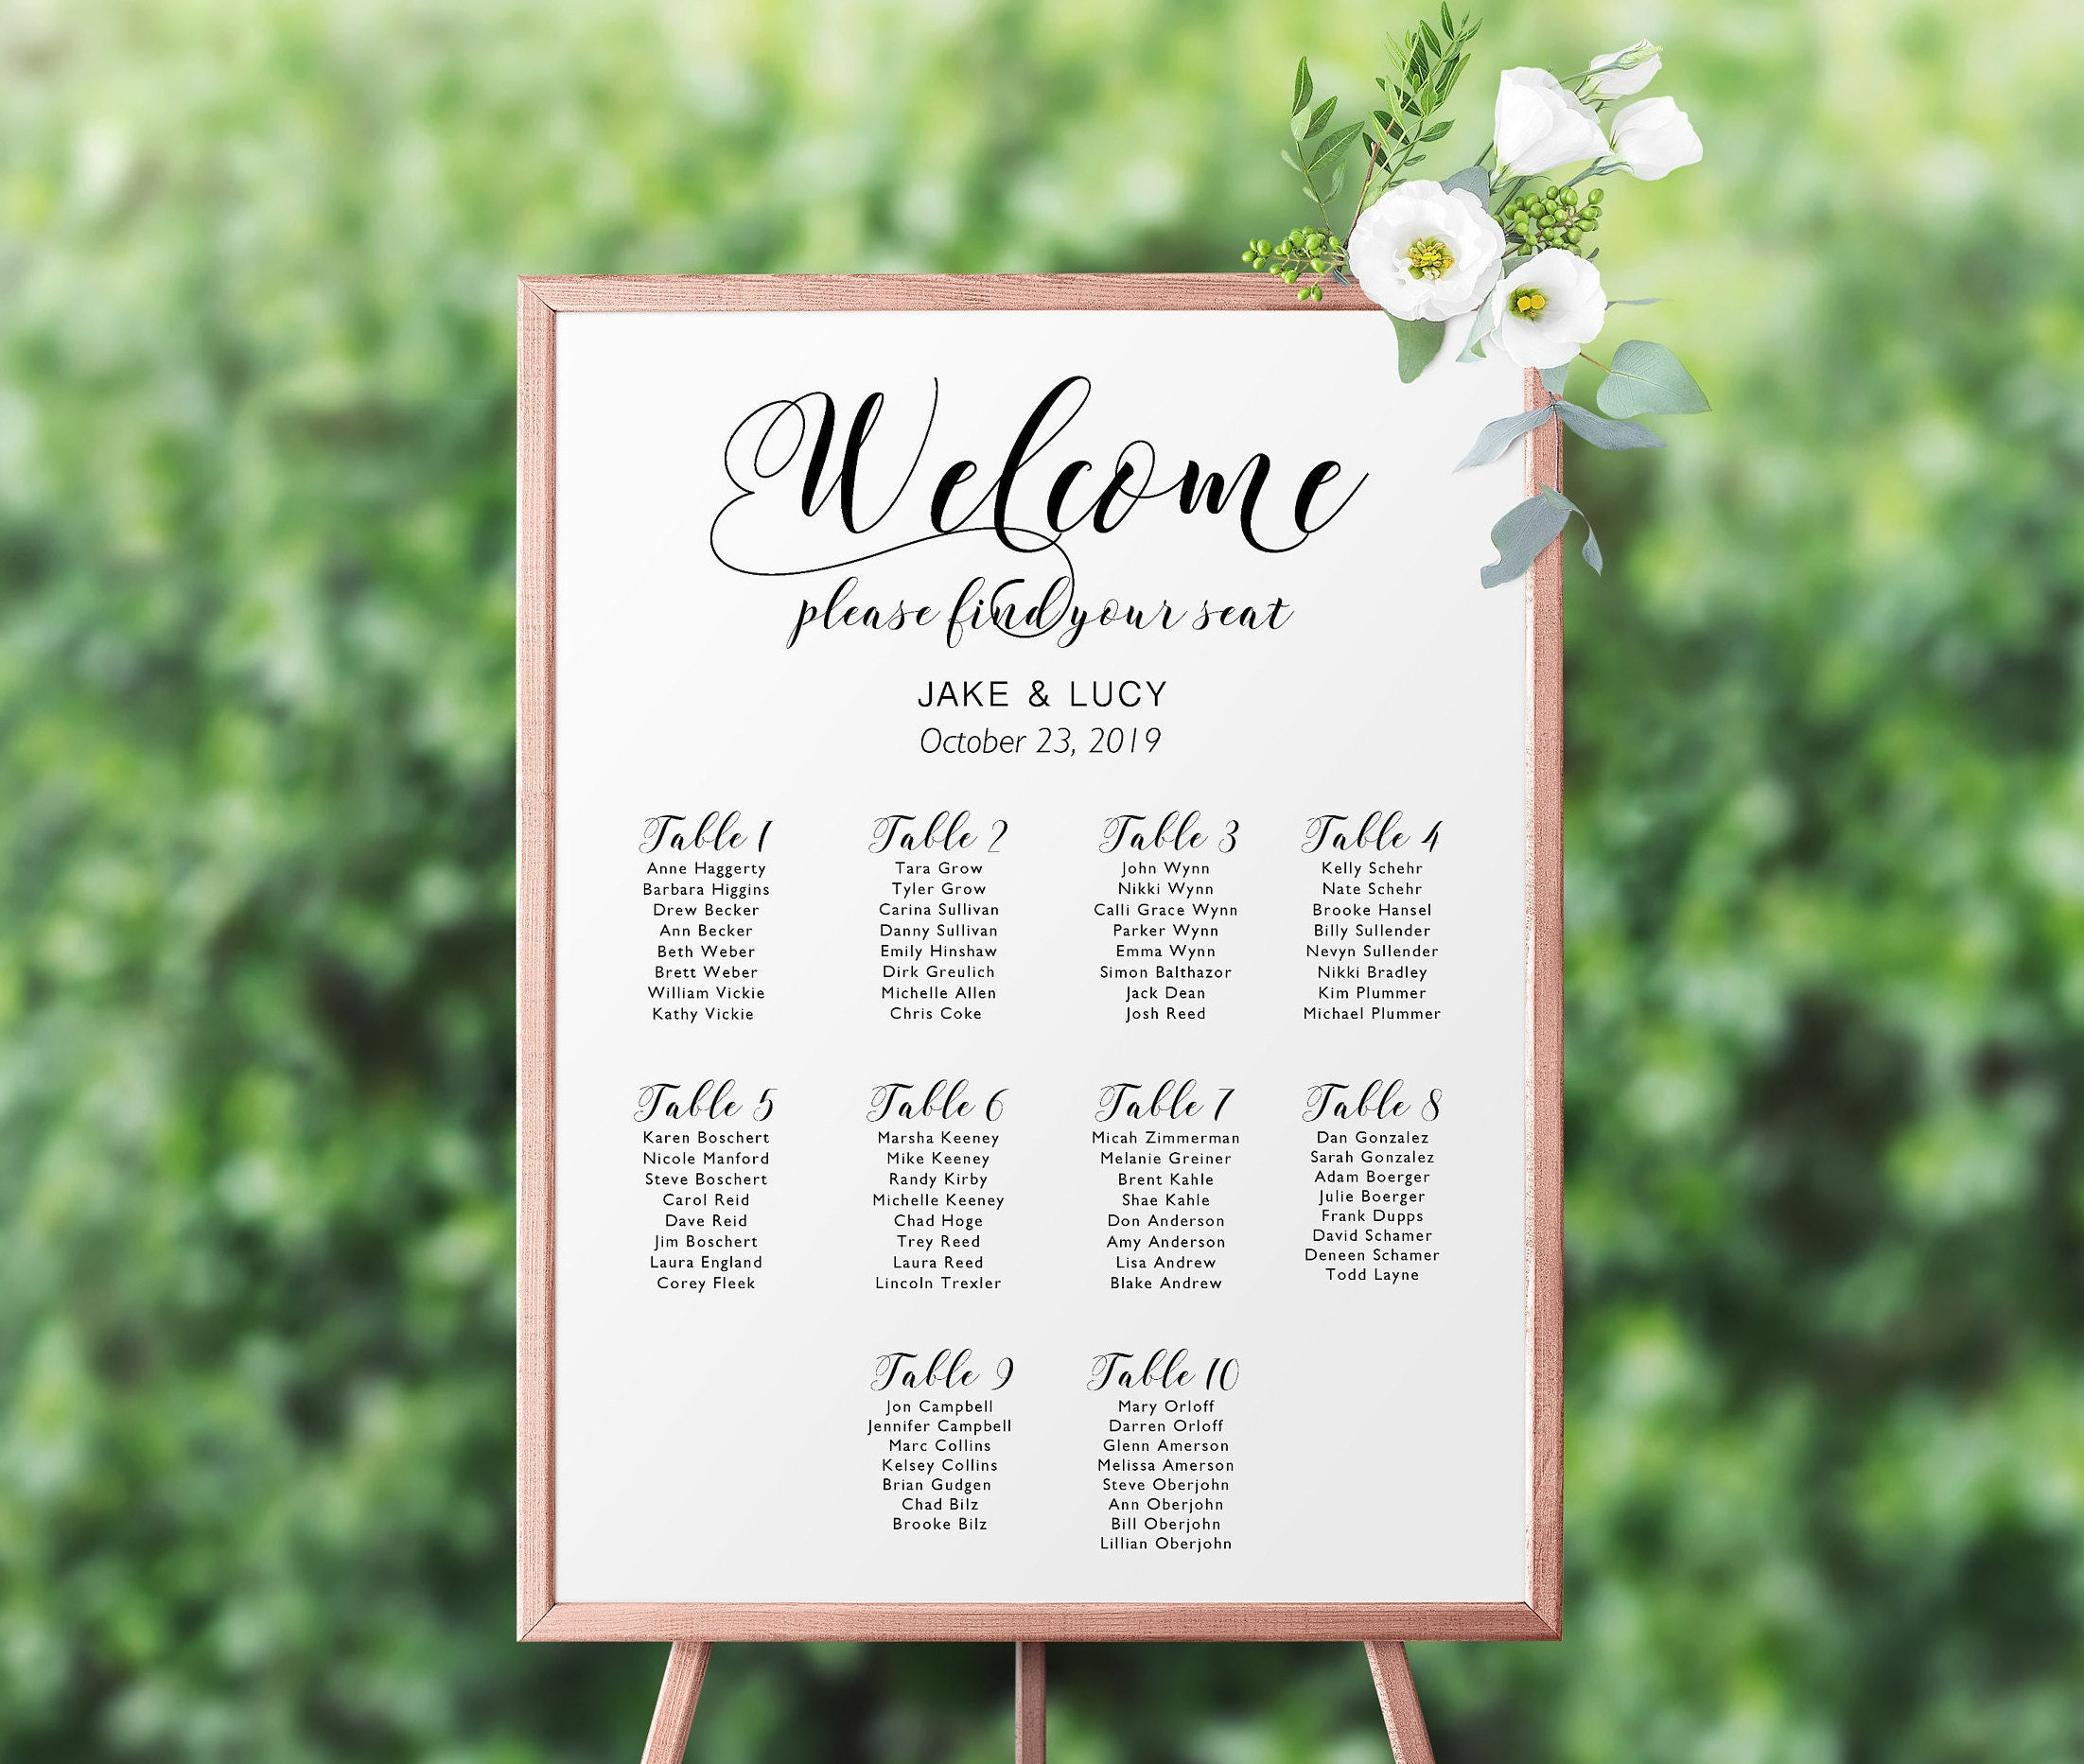 Wedding Seating Chartgold Foil Seating Chartseating Listwedding Welcome Signtable Assignmenttable Names Chartseating Chart Download